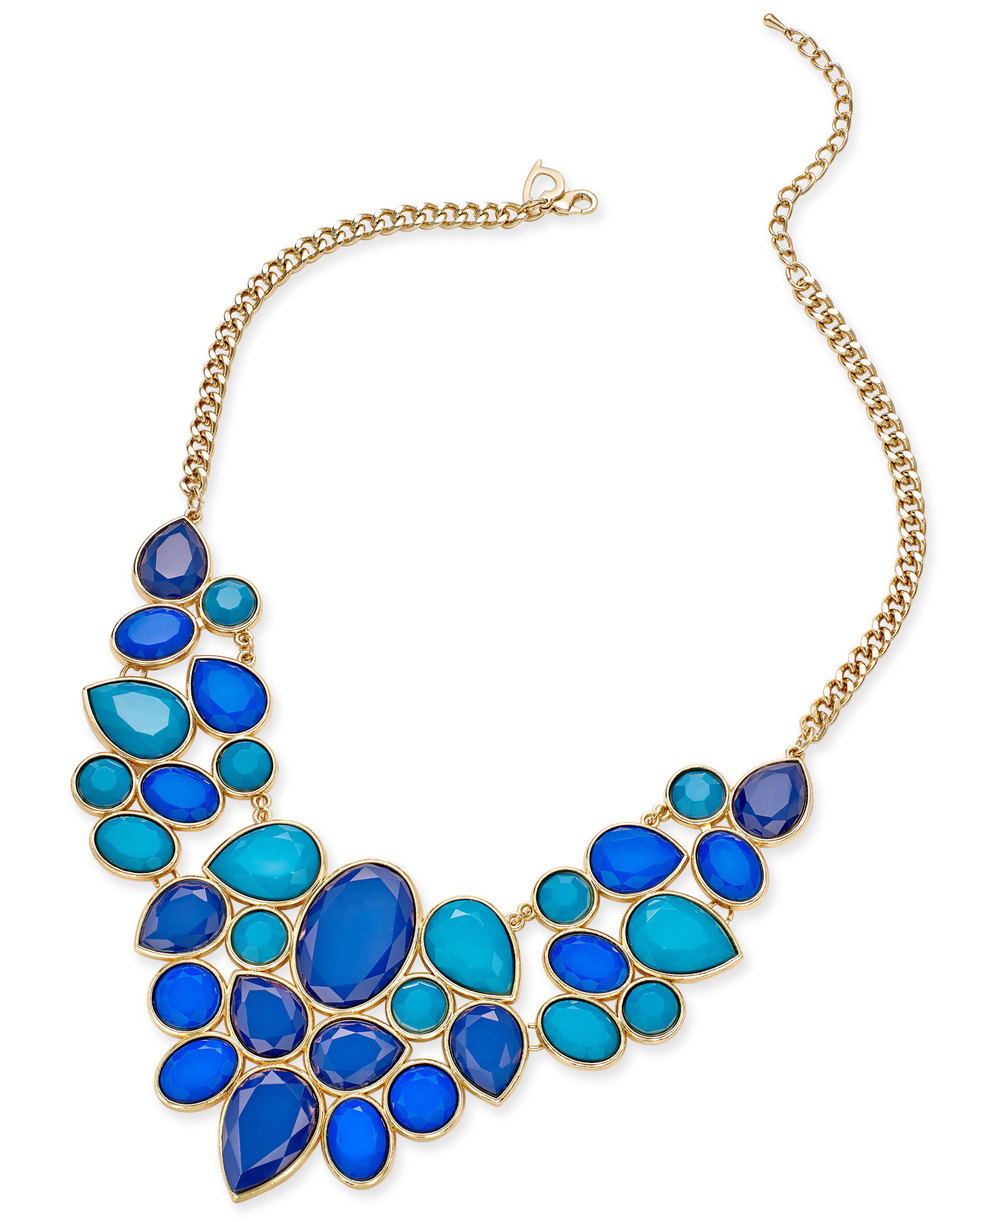 Thalia_Sodi_Gold-Tone_Blue_Stone_Statement_Necklace,_Only_at_Macy's_-__39.50.jpg